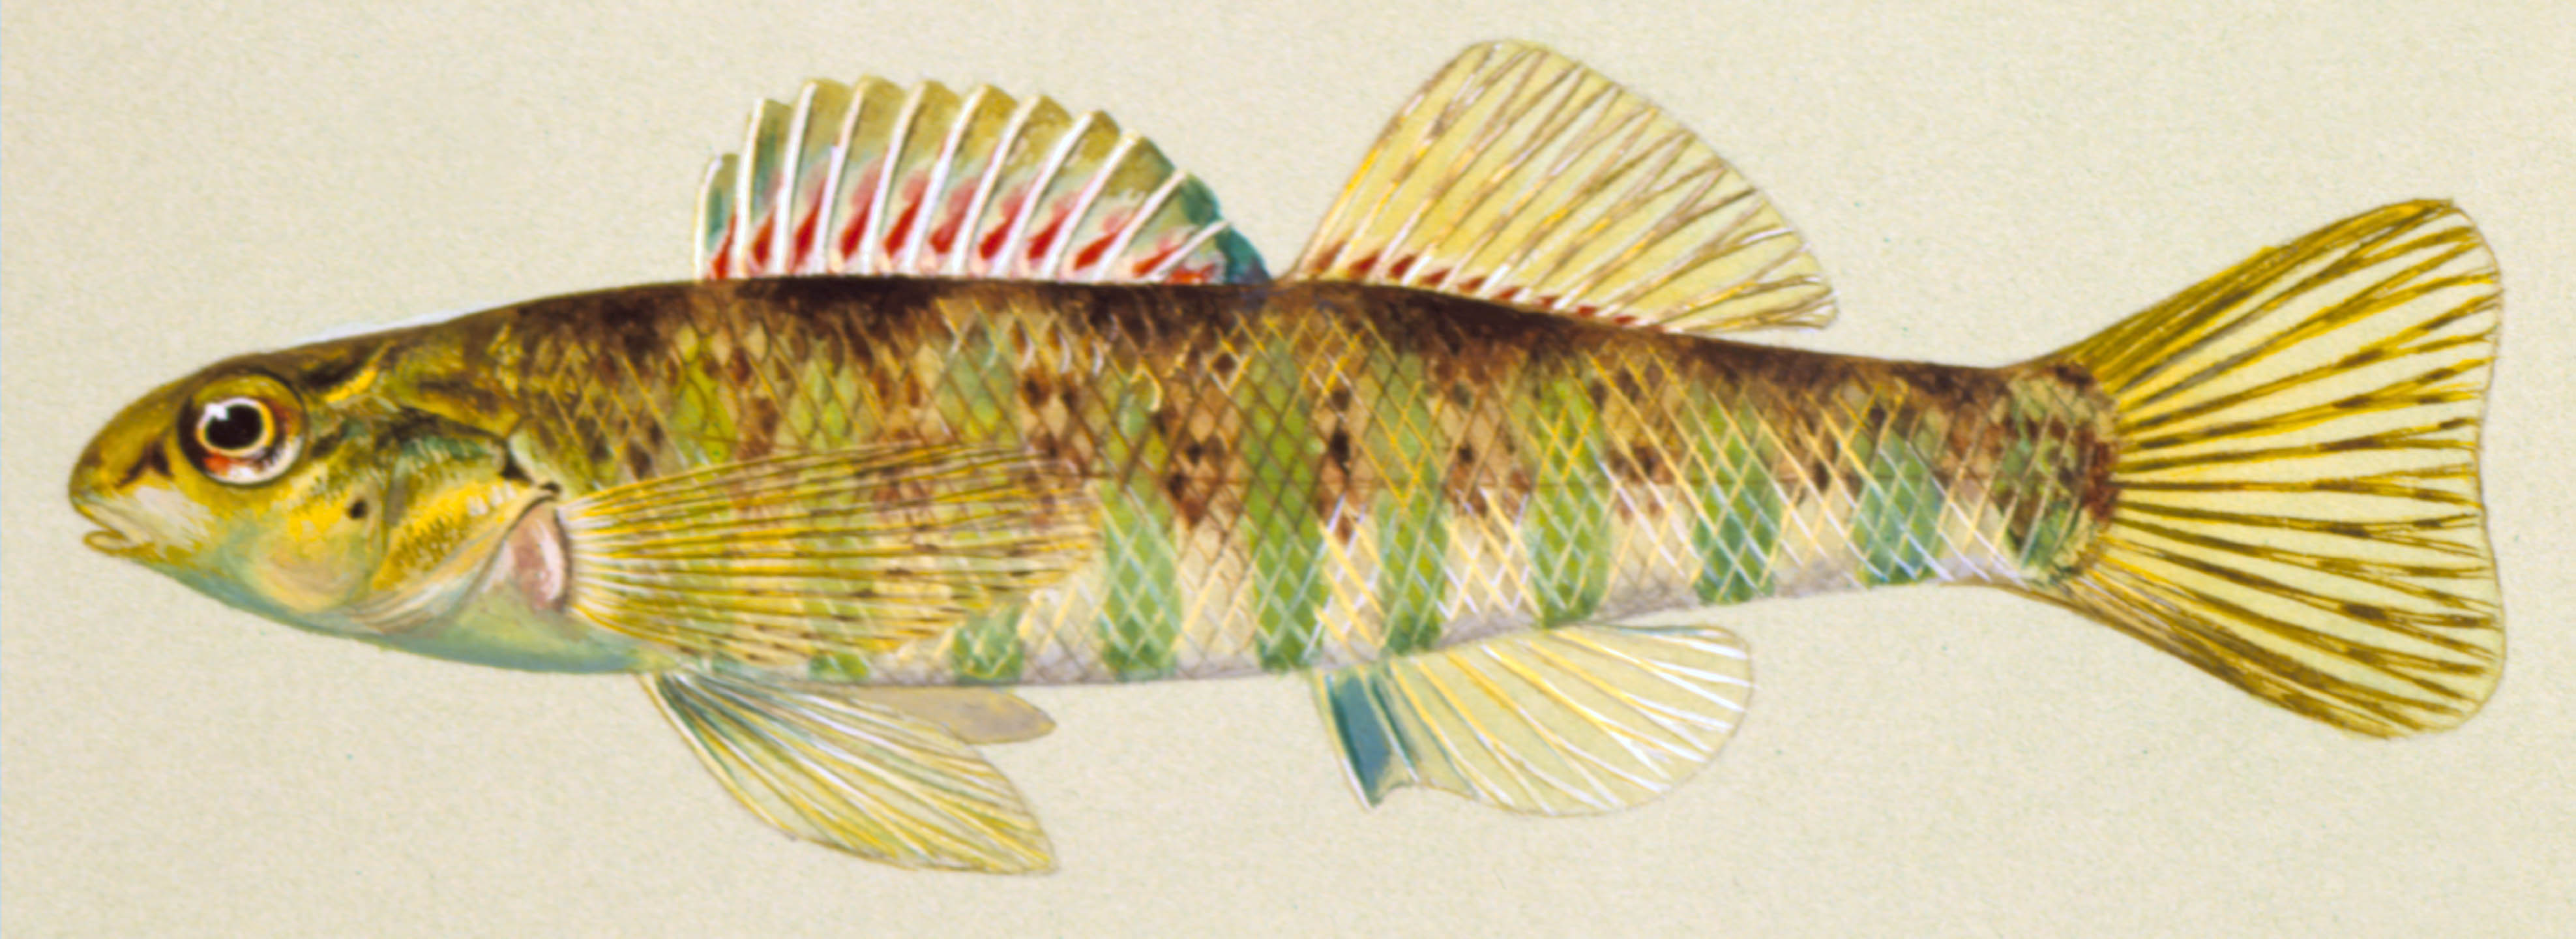 Banded darter, photo courtesy of Ohio Department of Natural Resources